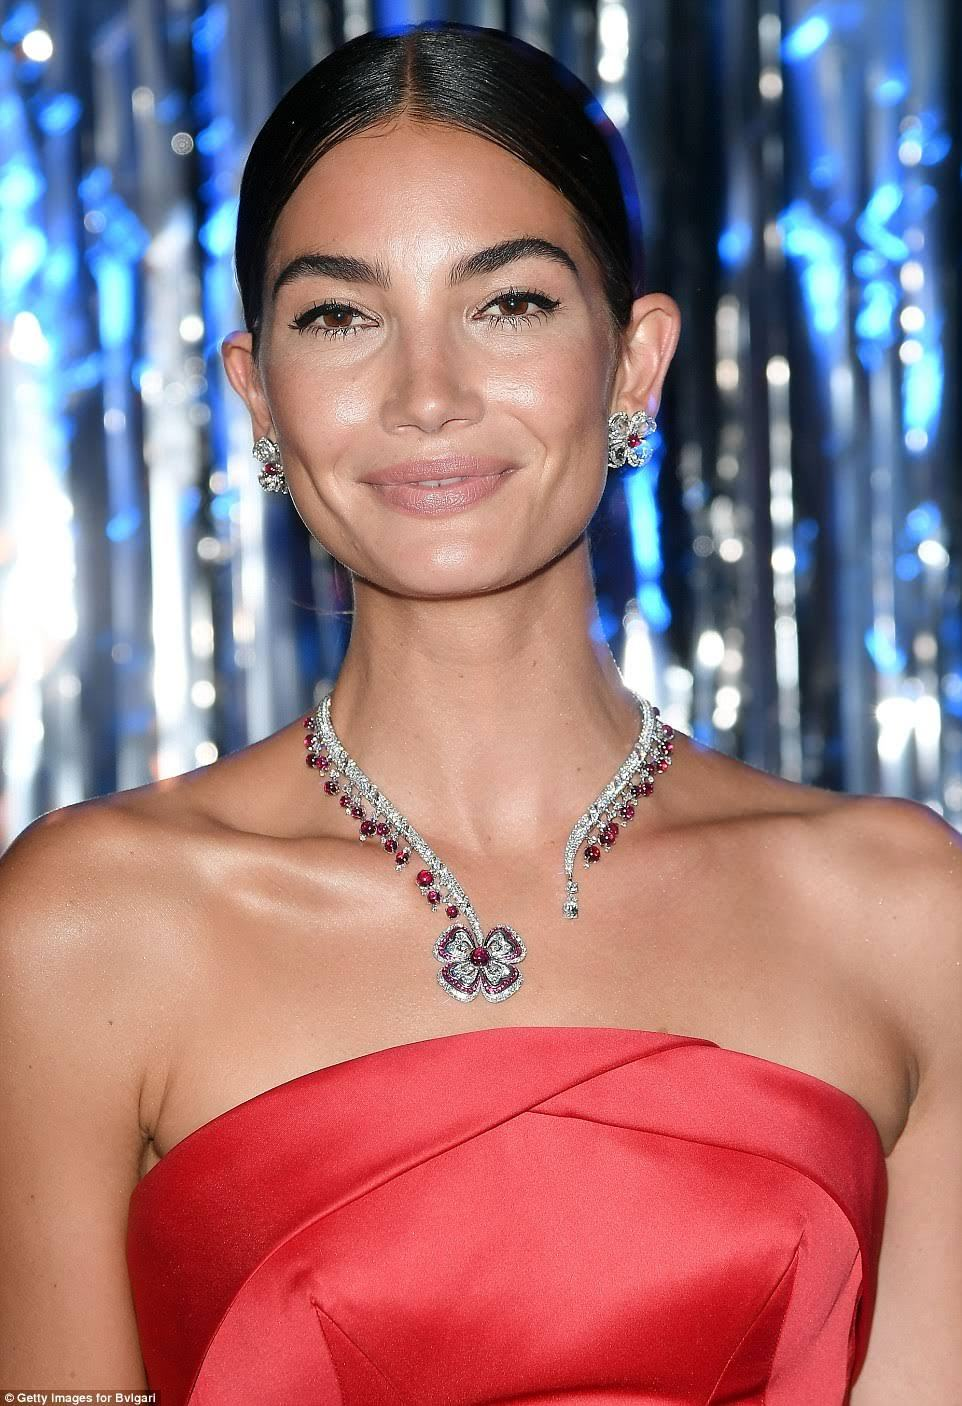 Lily Aldridge is wearing Diamond and Ruby Fiore Di Bulgari Necklace